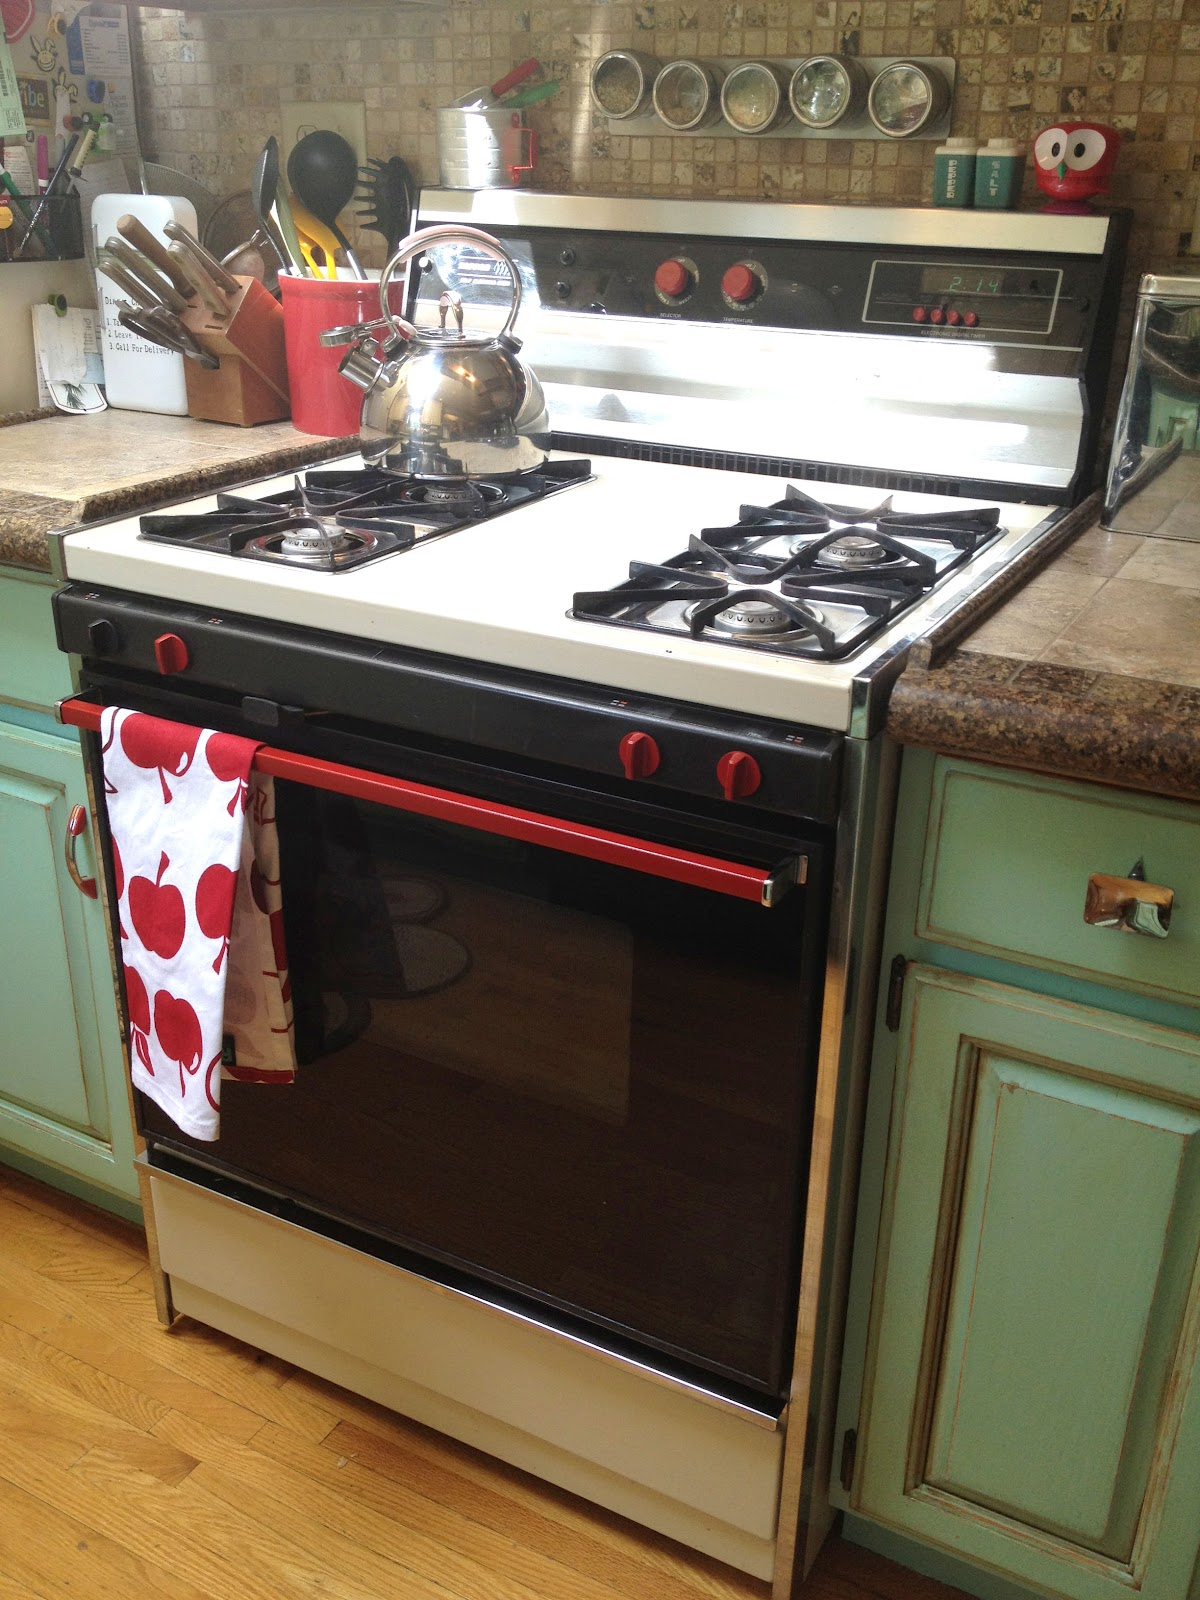 Id mommy painting appliances my 1950 39 s style kitchen for 50s style kitchen appliances